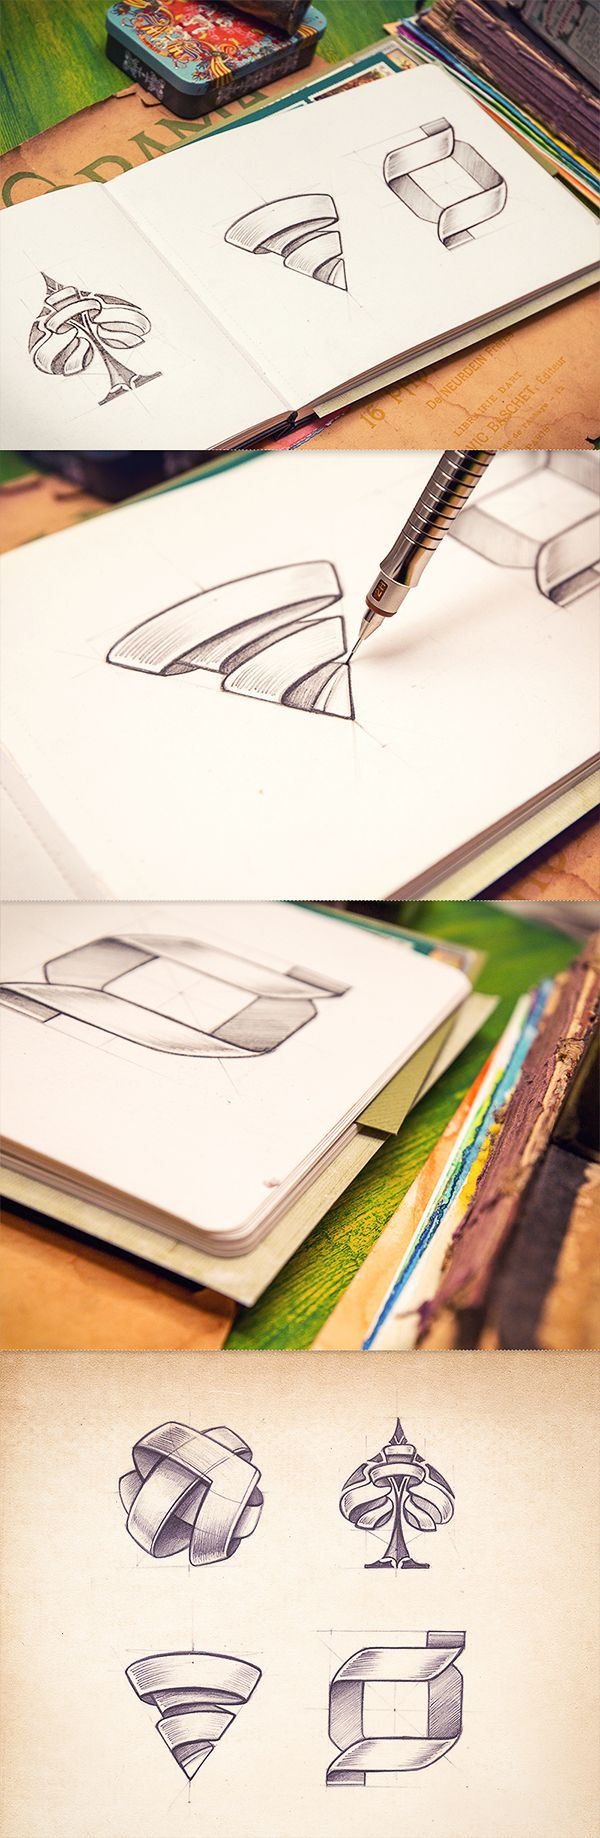 Sketchbook de Mike, a través de Behance